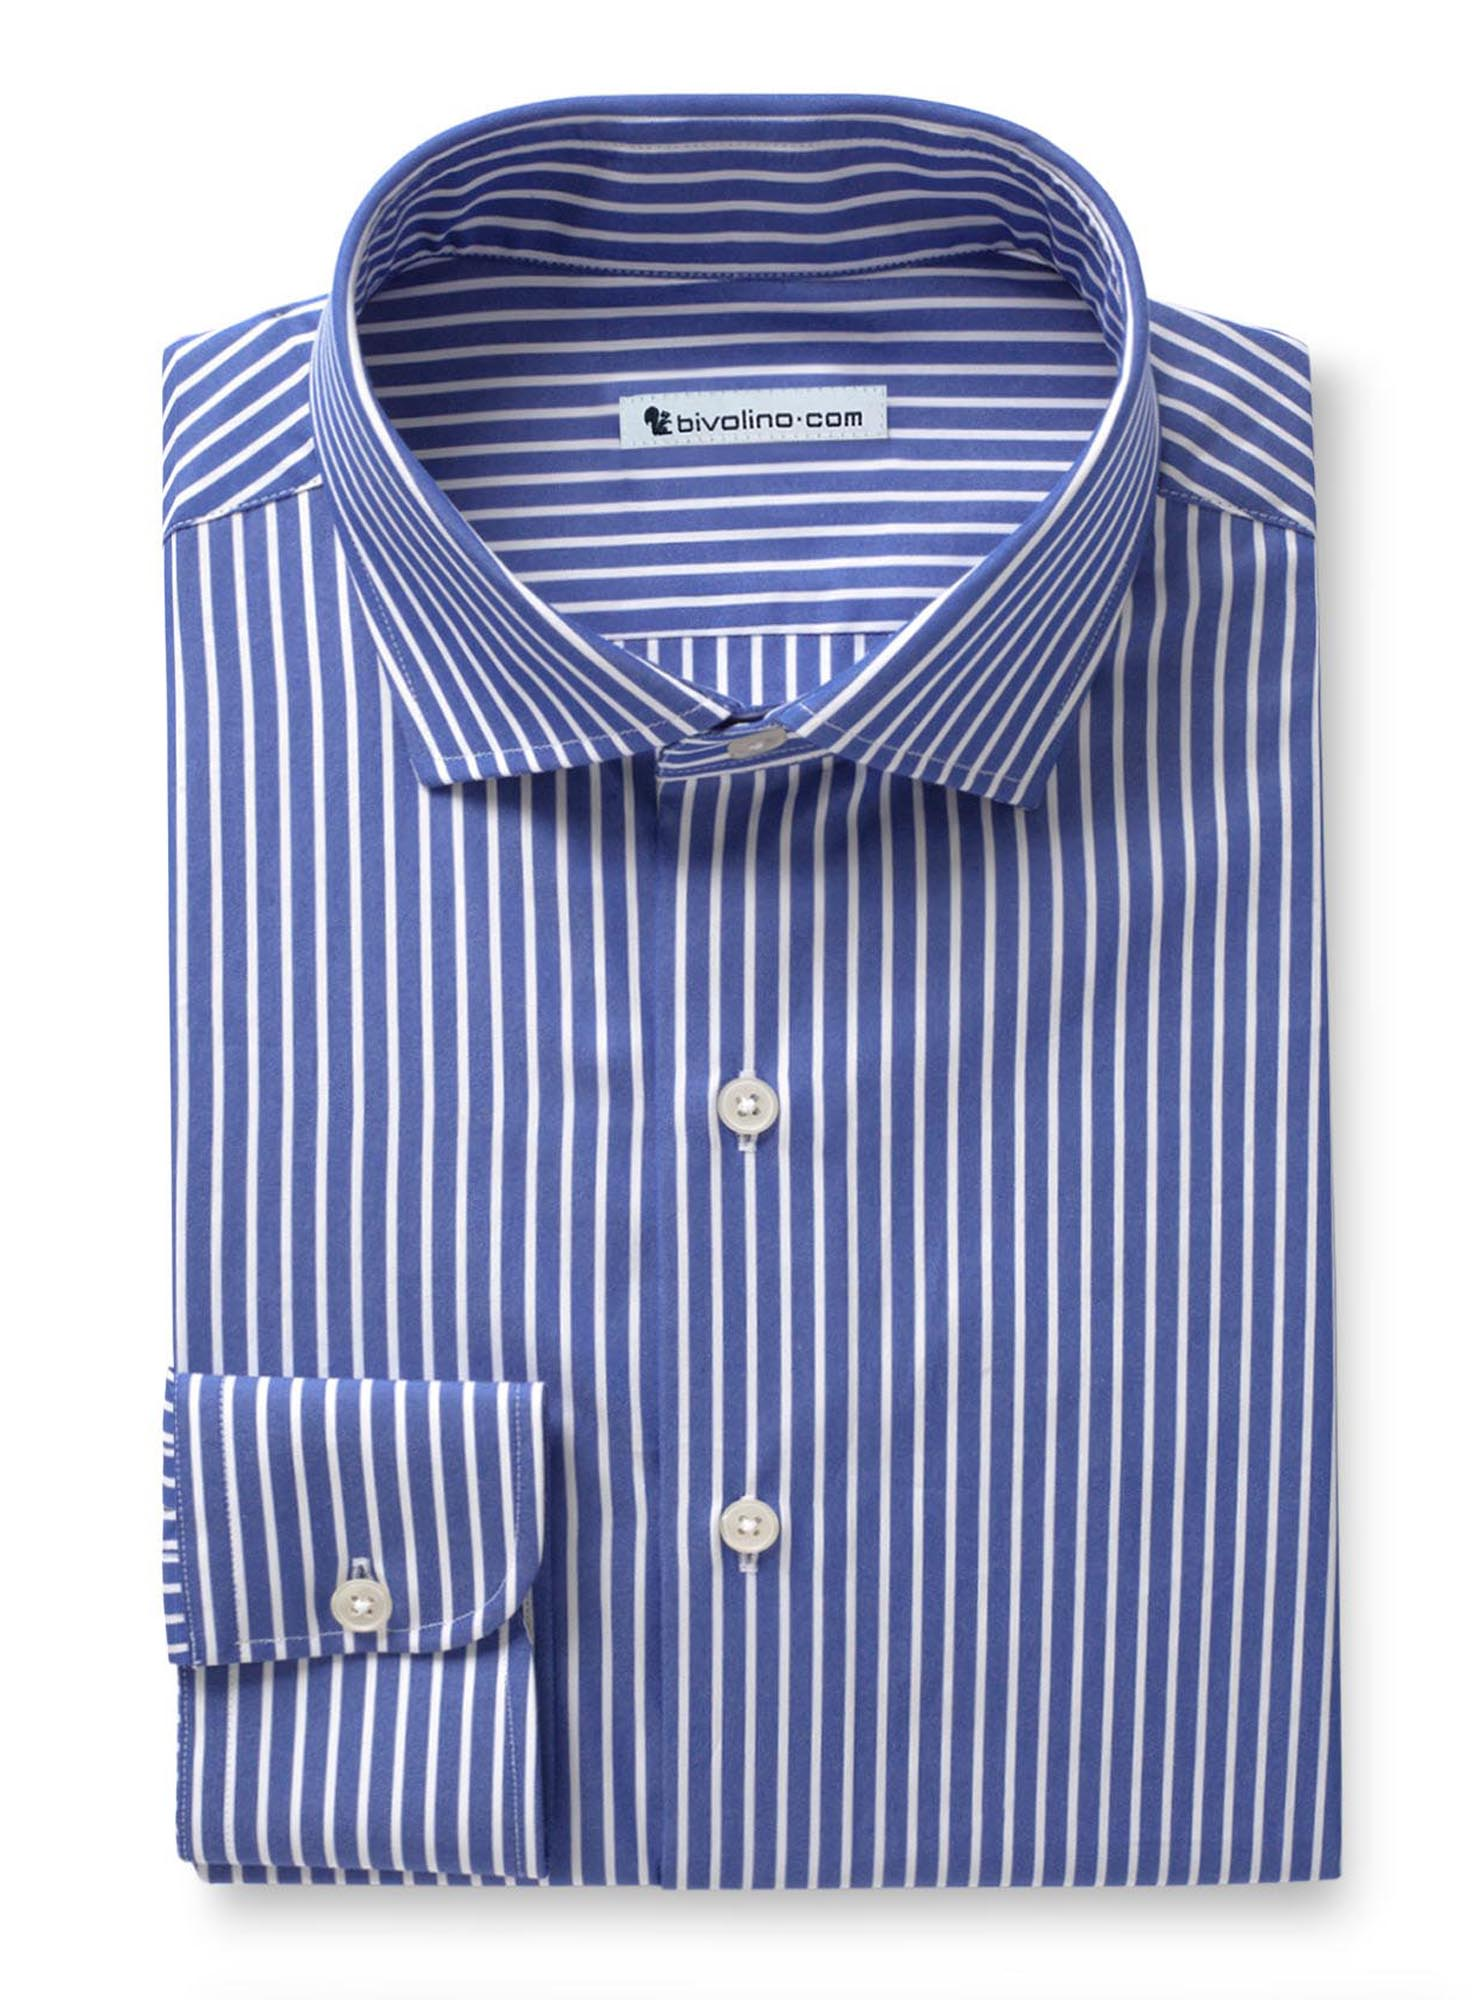 TRIPATO - Blue Striped Shirt - TUFO 1